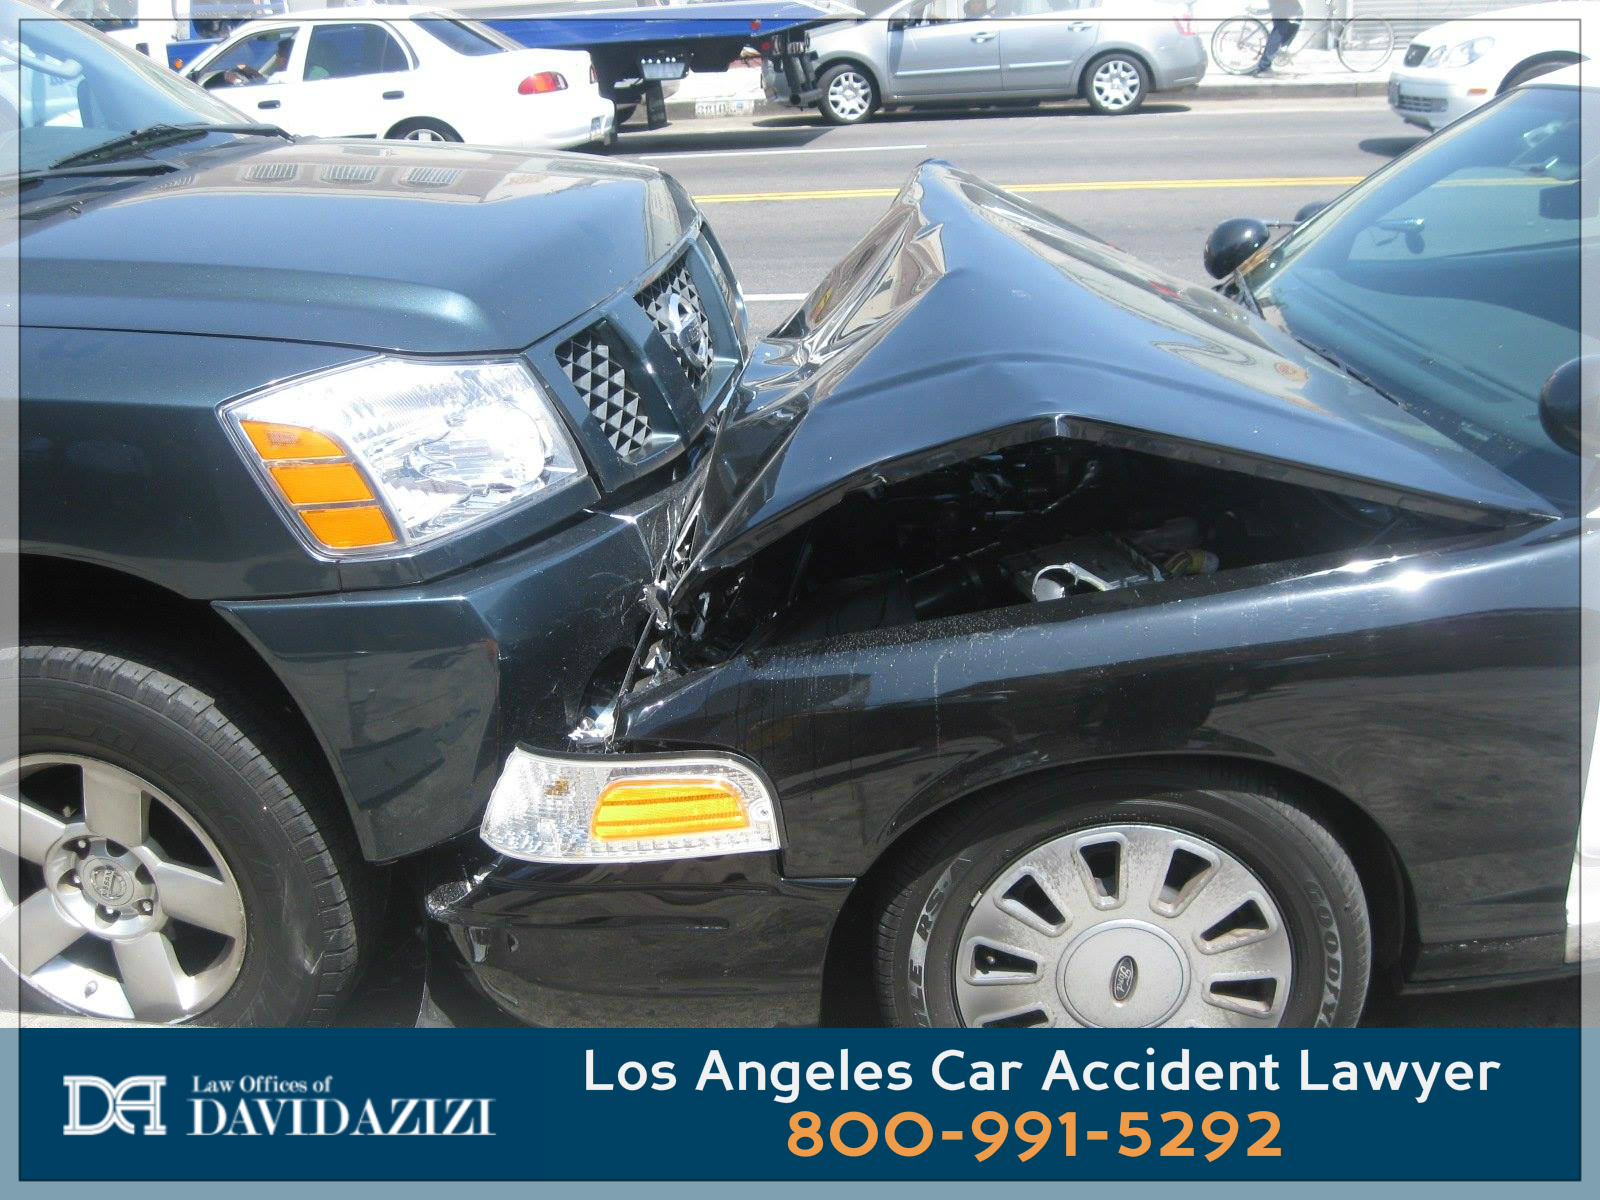 azizi-car-accident-1